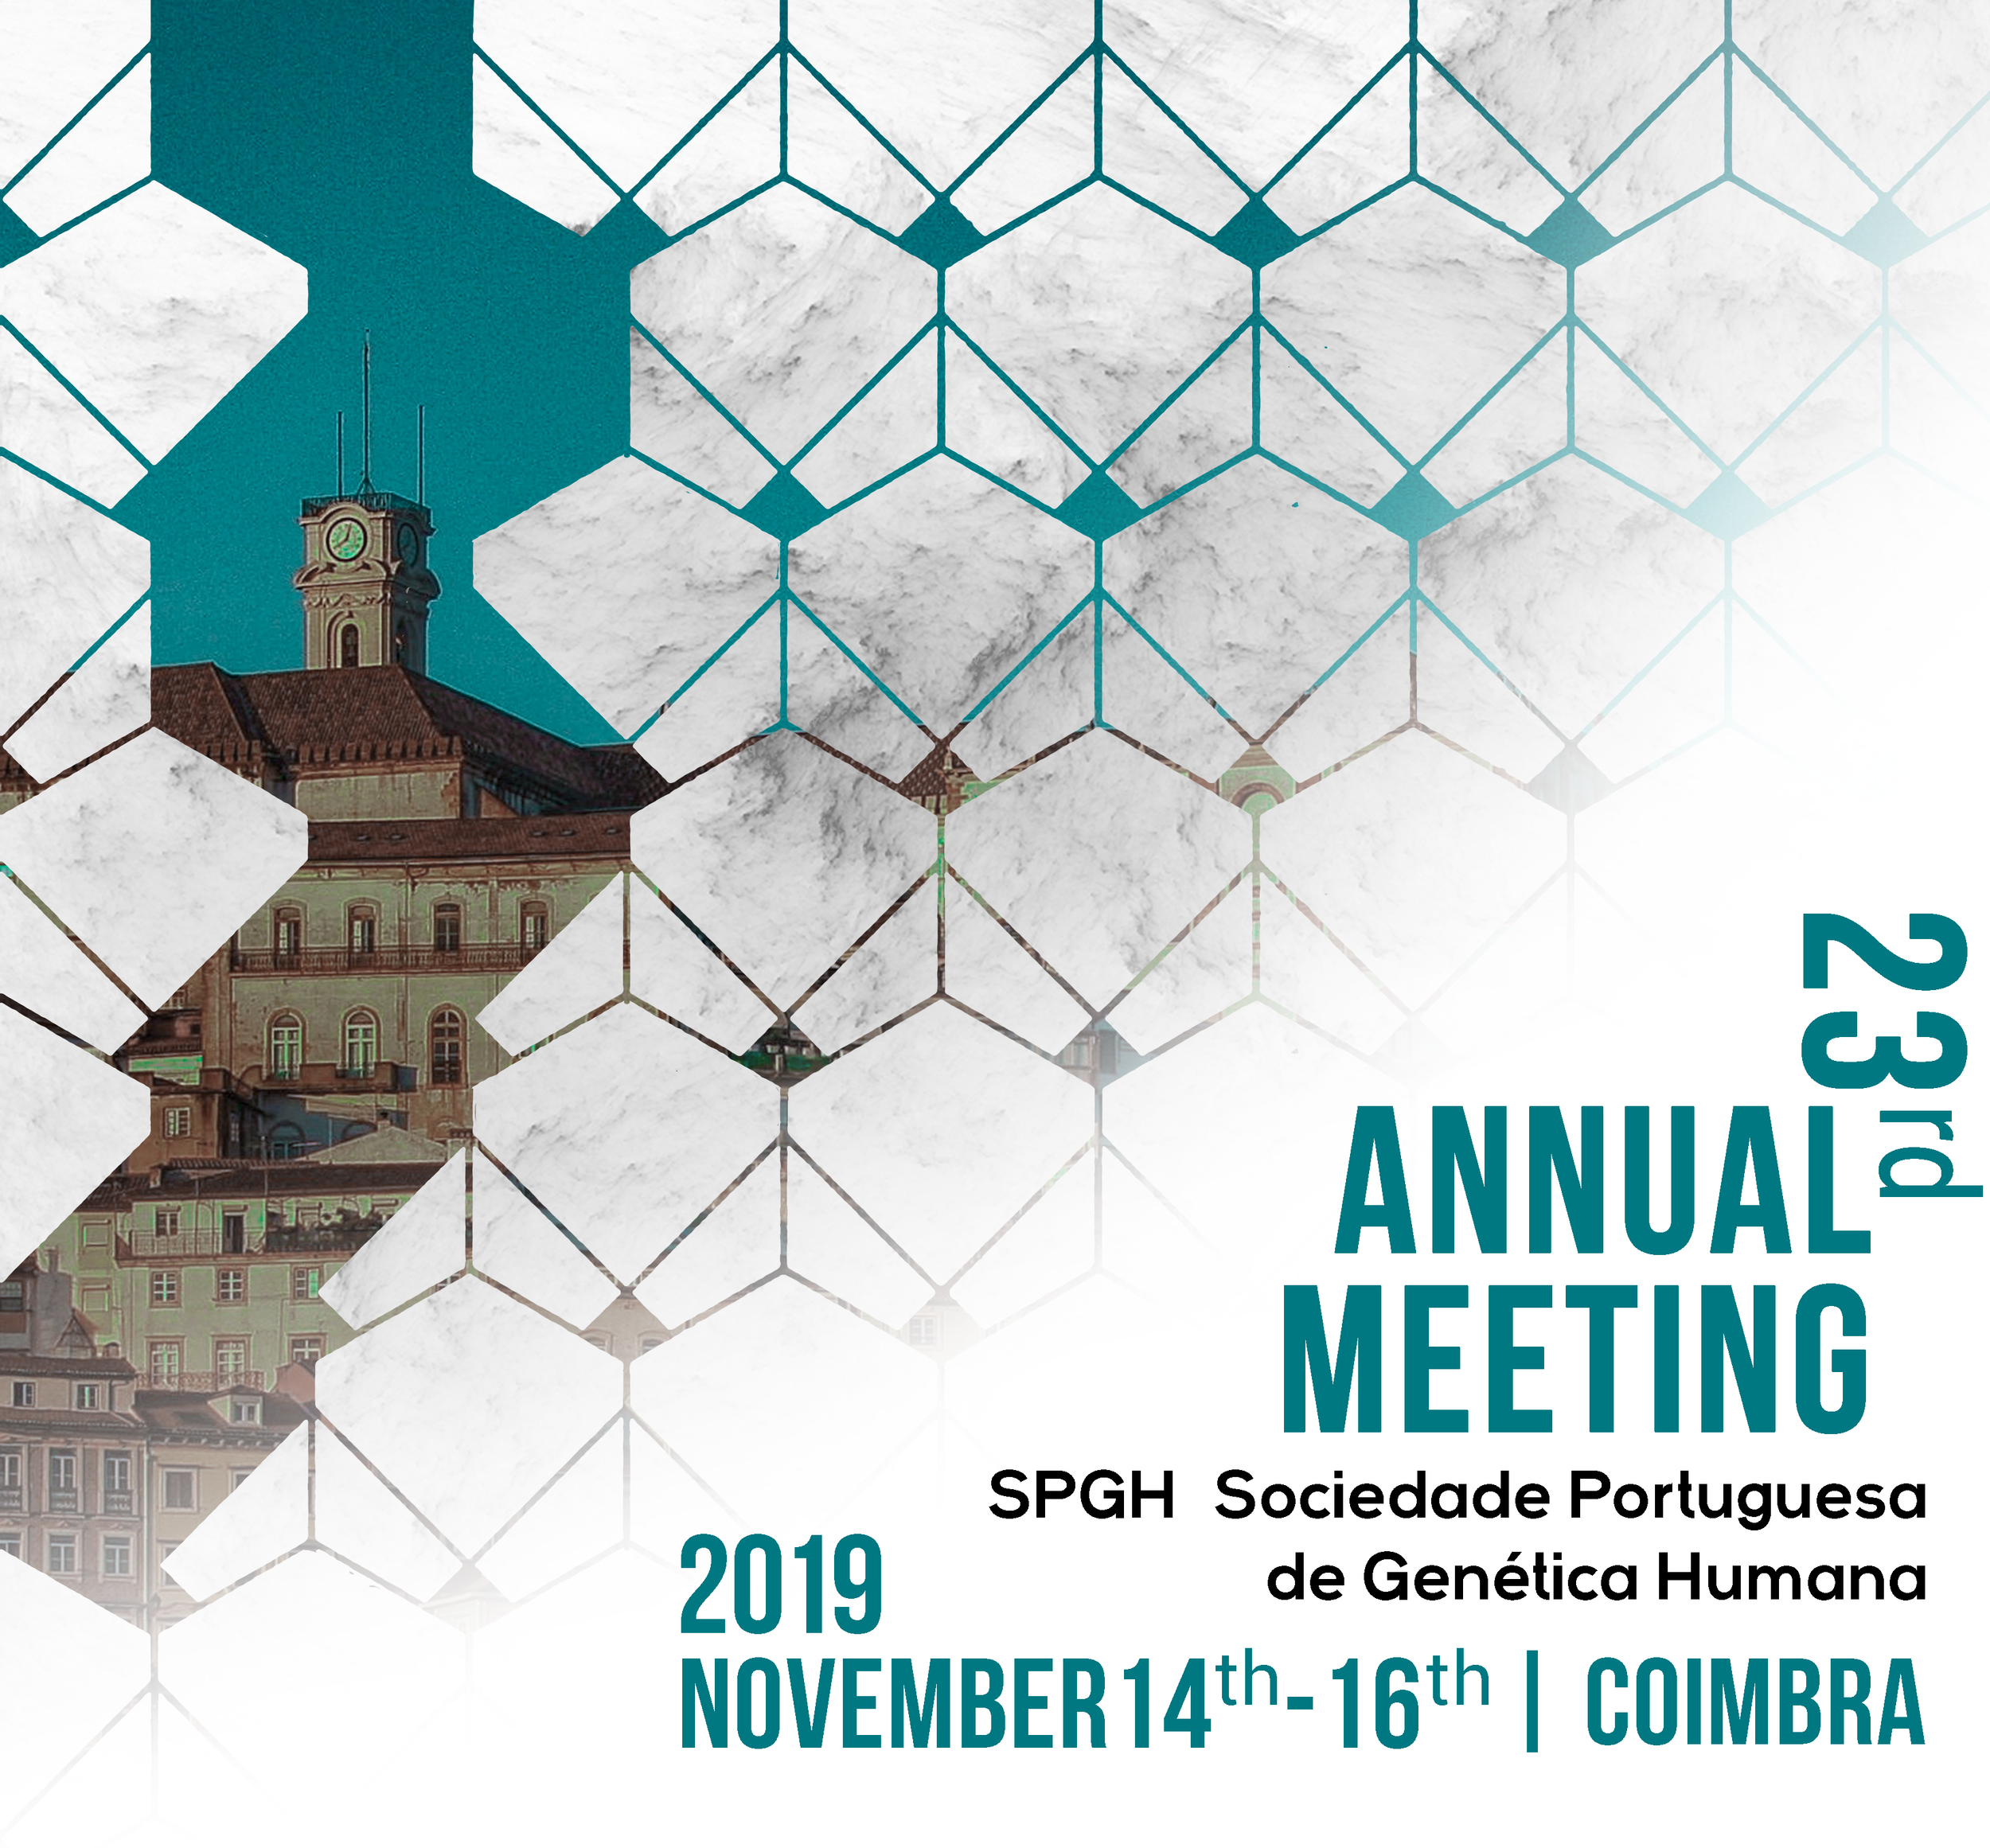 Cartaz_23rd Annual Meeting SPGH_2019.png